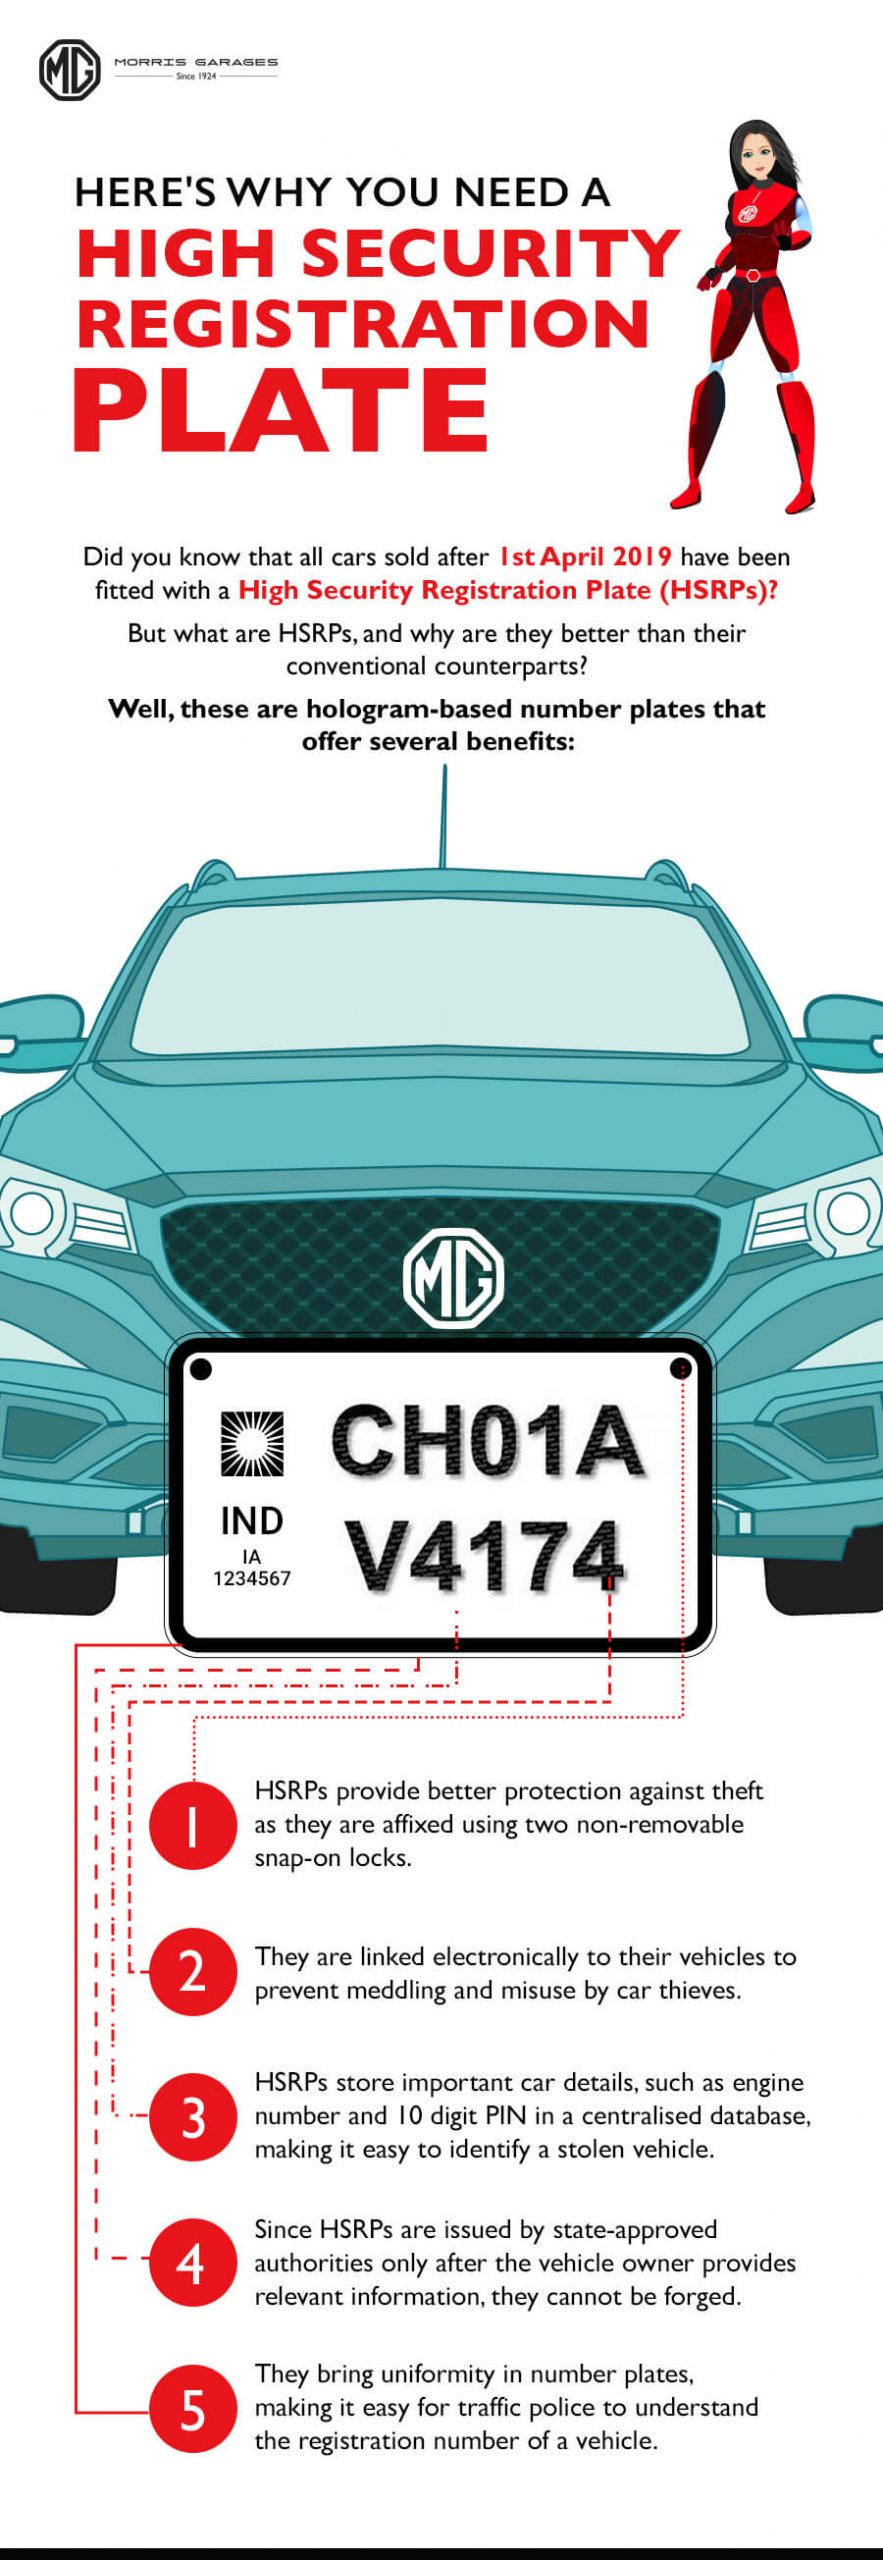 Did you know these benefits of a High Security Registration Plate